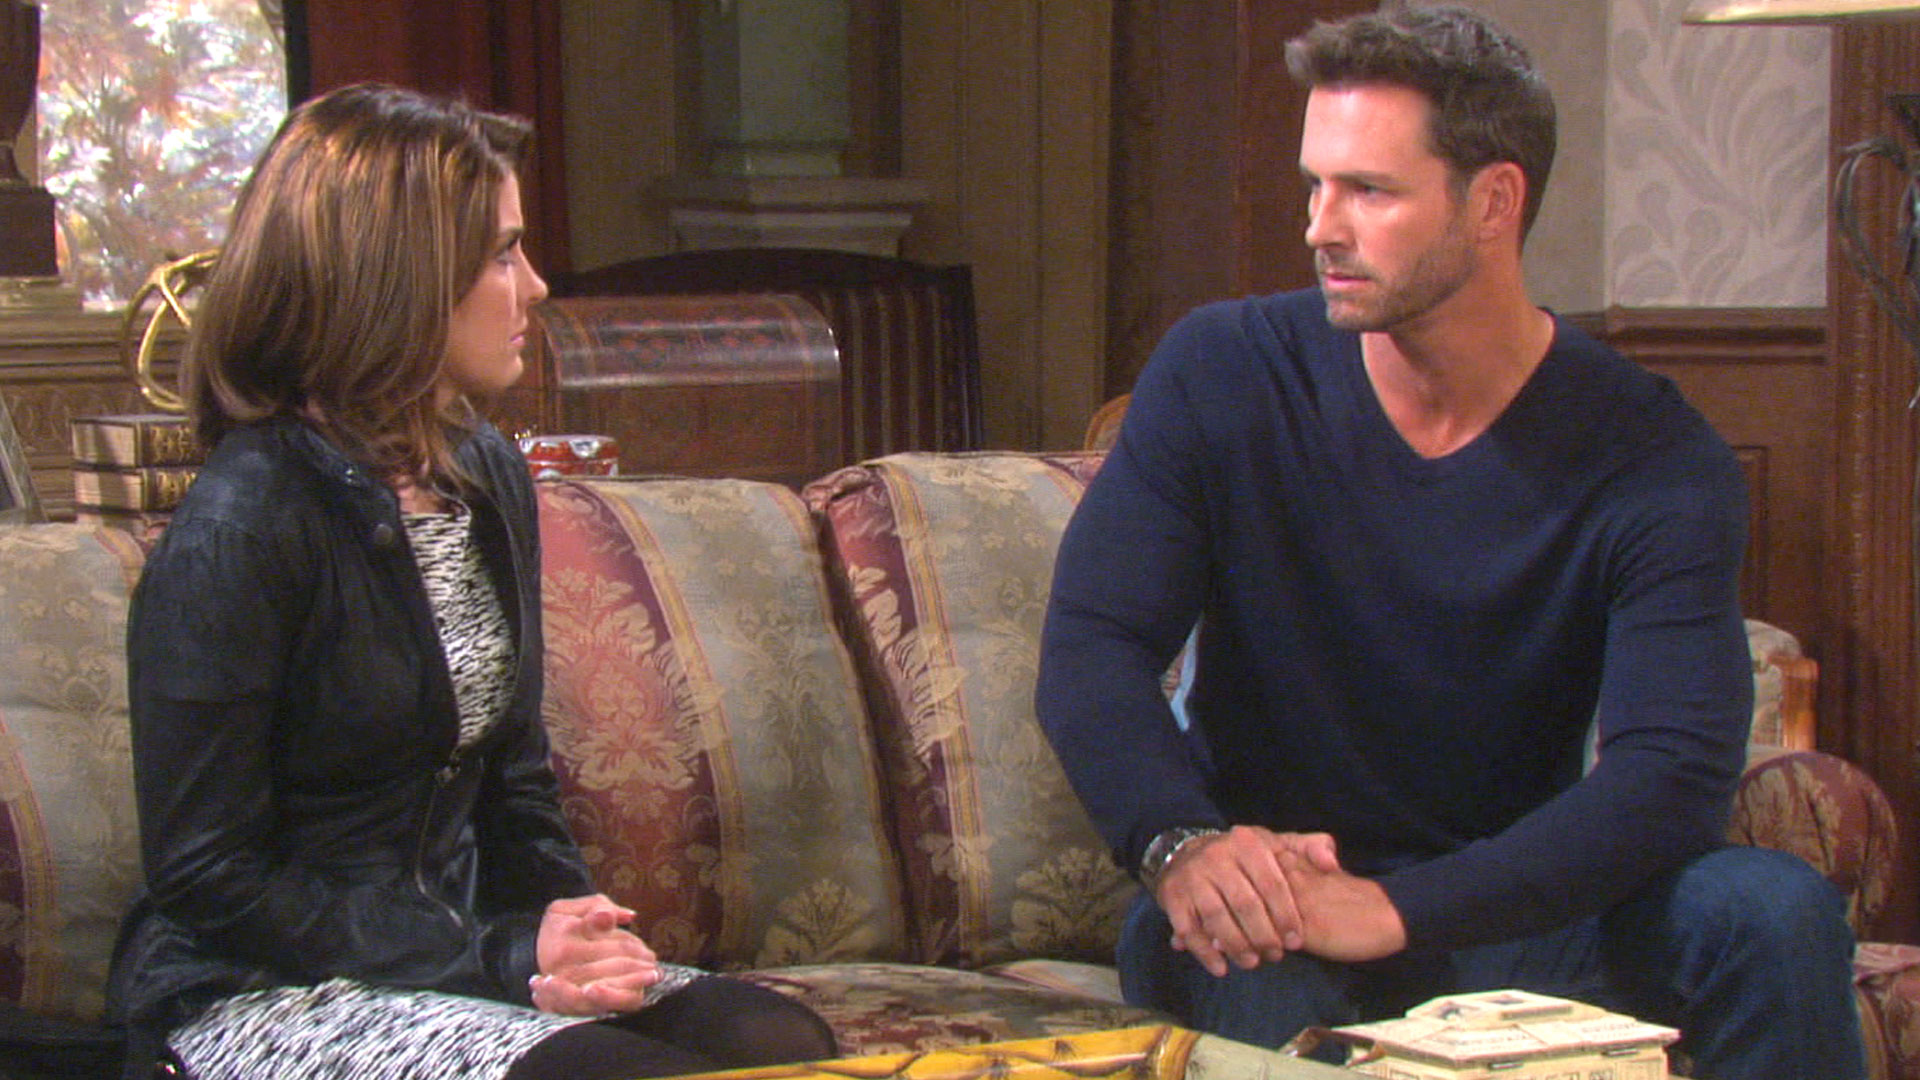 Days are lives monday 11 10 14 episodes days of our lives nbc for Where the rooms are a collection of our lives